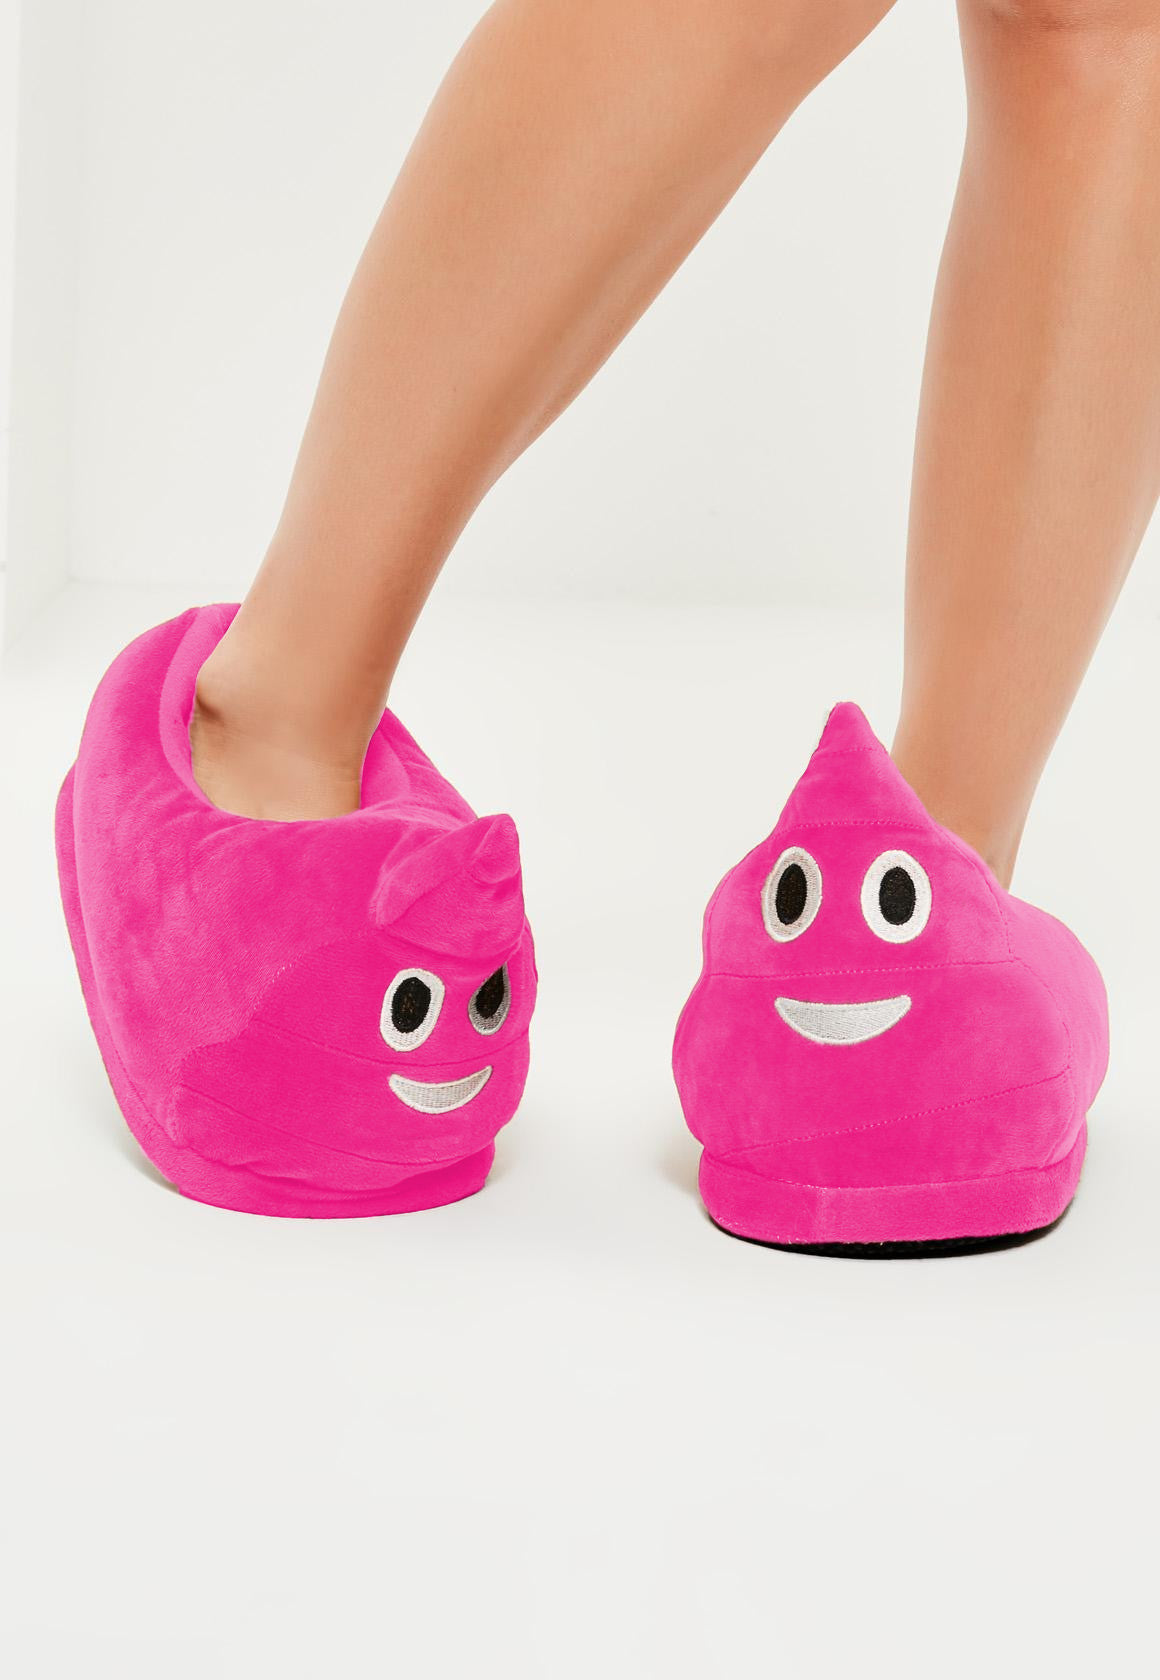 27c5cc296652 Desire Deluxe Funny Novelty Emojis Poo Slippers Gift Toy Present for Girls  – Winter Smiley Plush Indoor Emoticon Poop Footwear for Adults Ladies  Children s ...